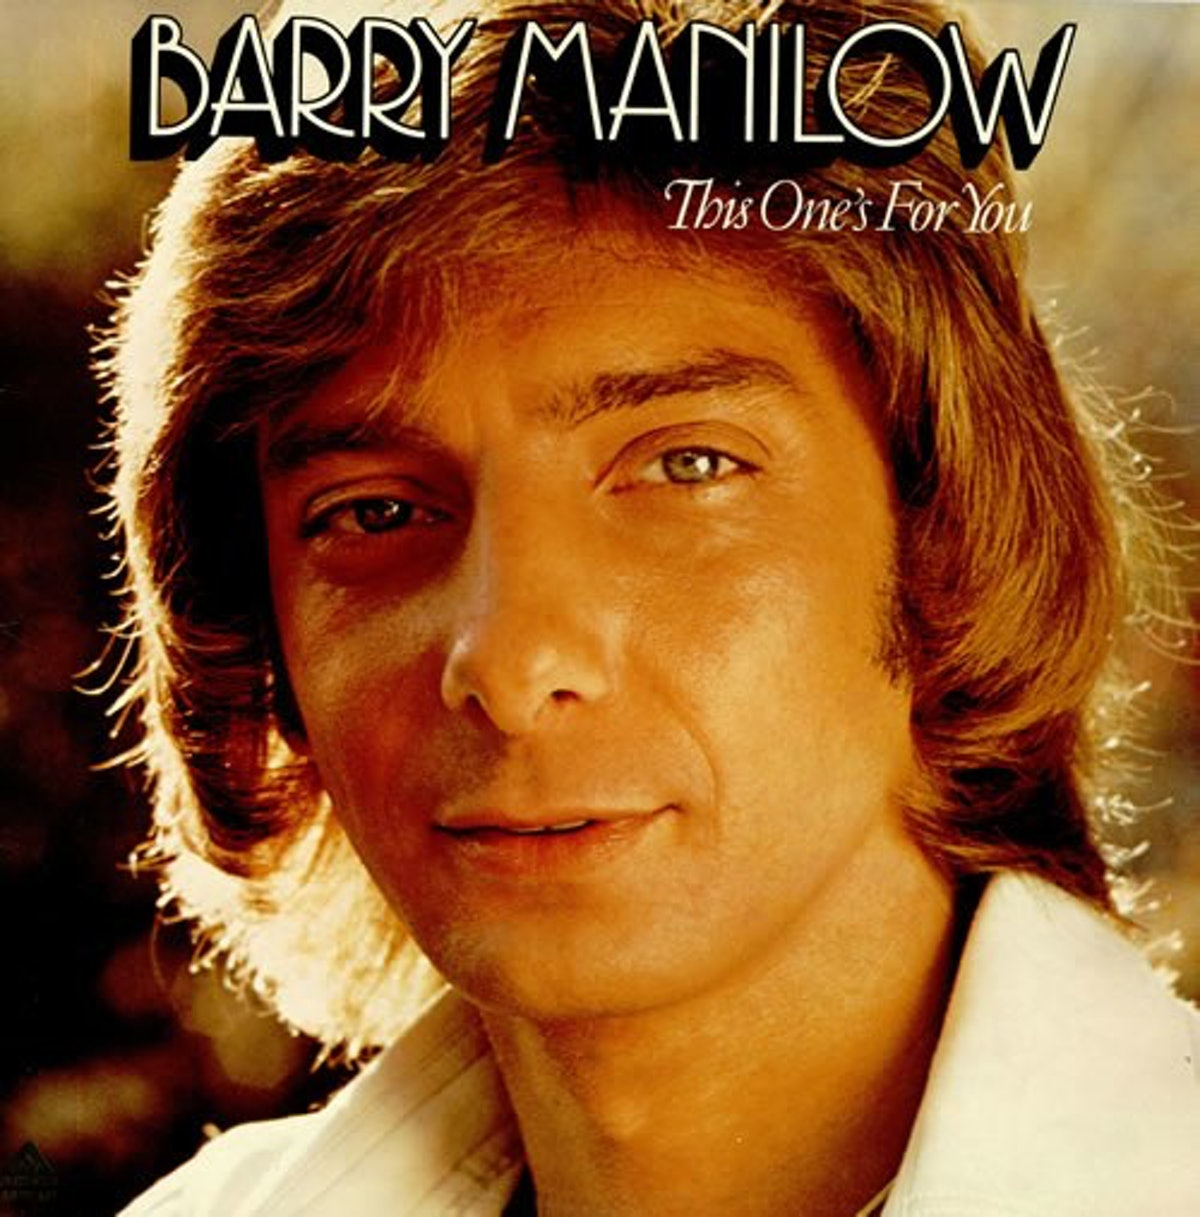 BARRY_MANILOW_THIS+ONES+FOR+YOU-458421.jpg